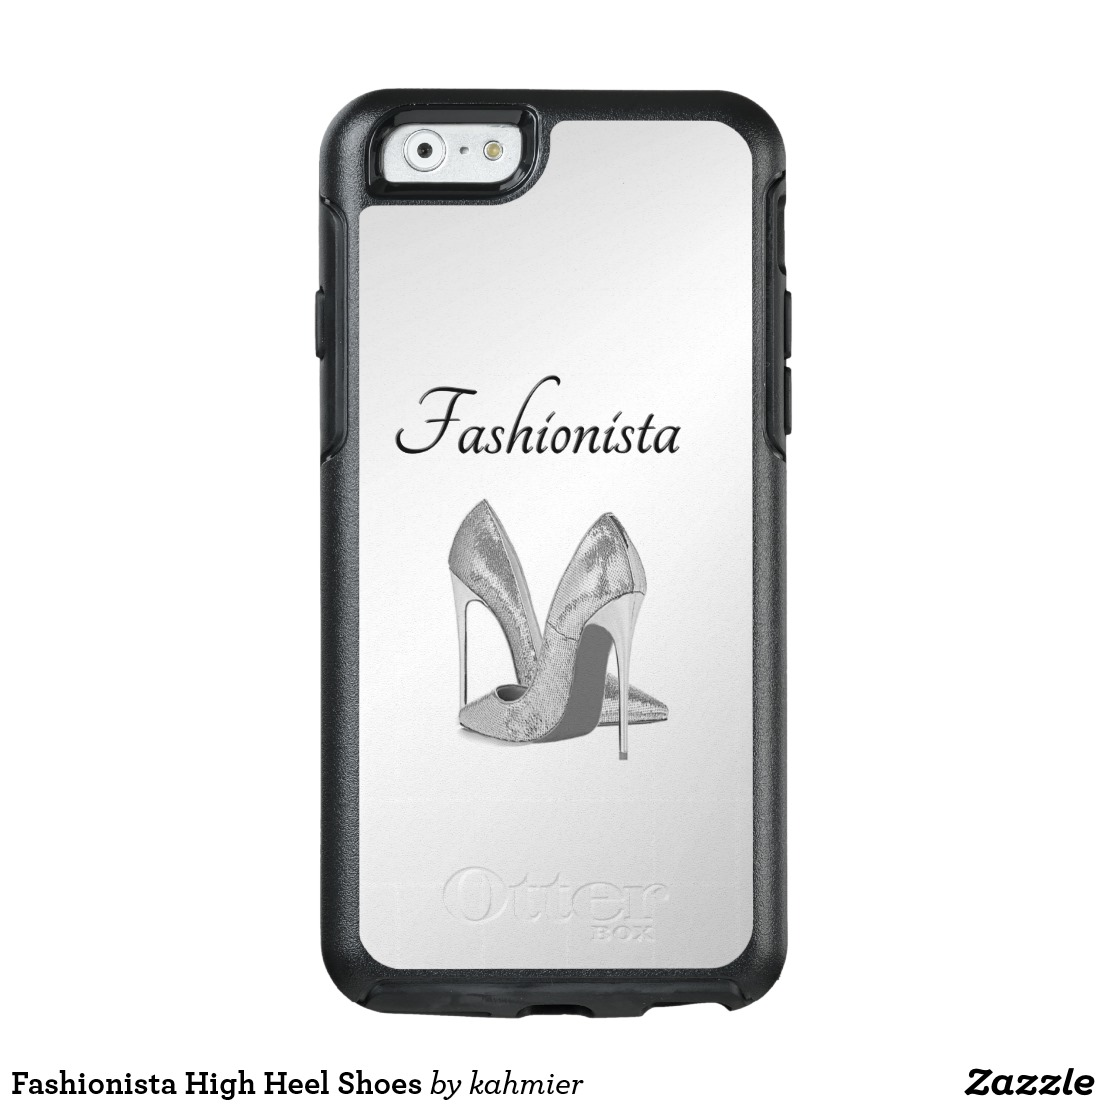 Fashionista High Heel Shoes OtterBox iPhone Case